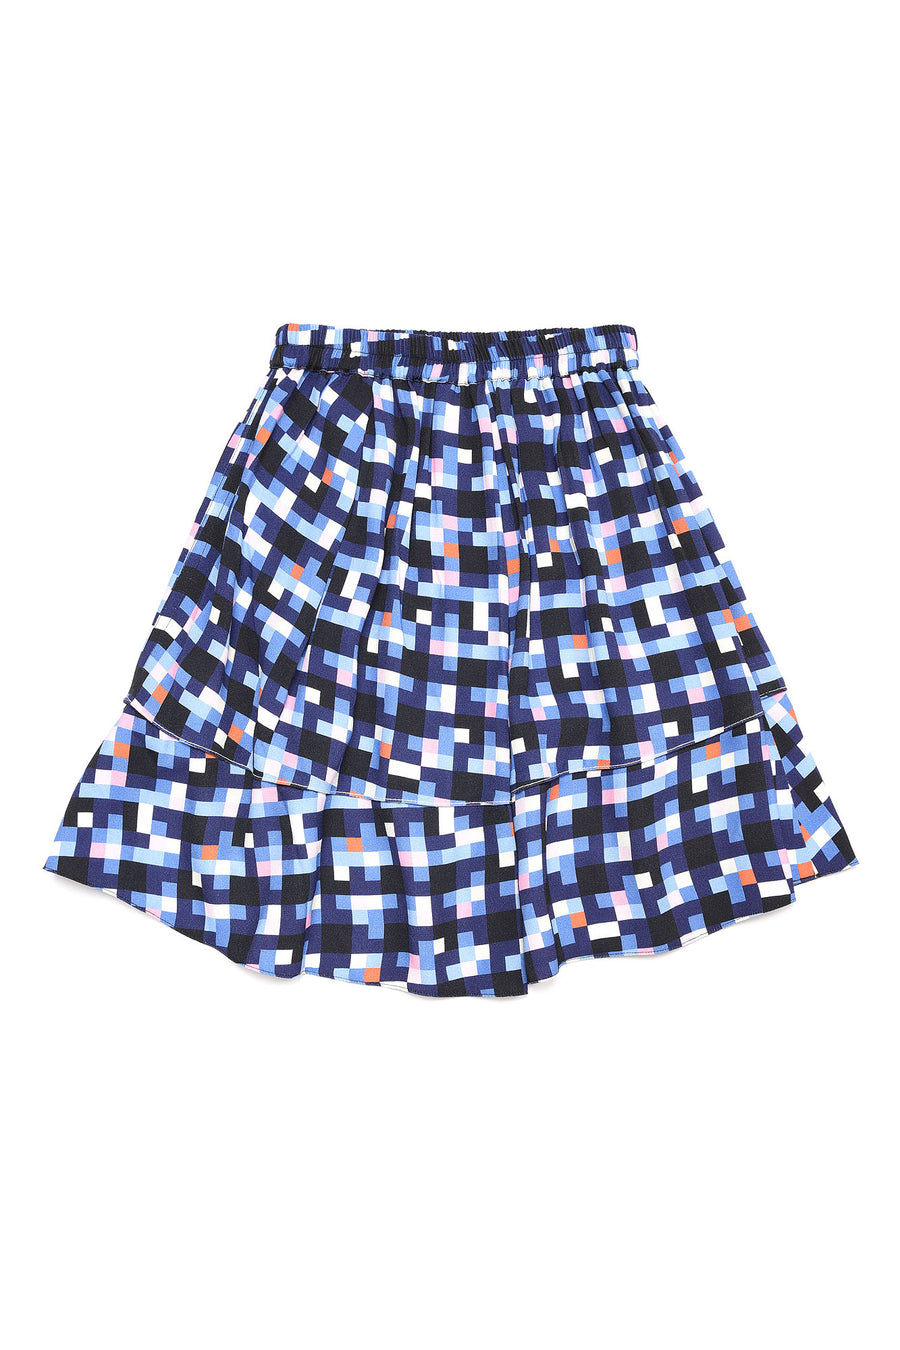 Pixelated Skirt by Marni